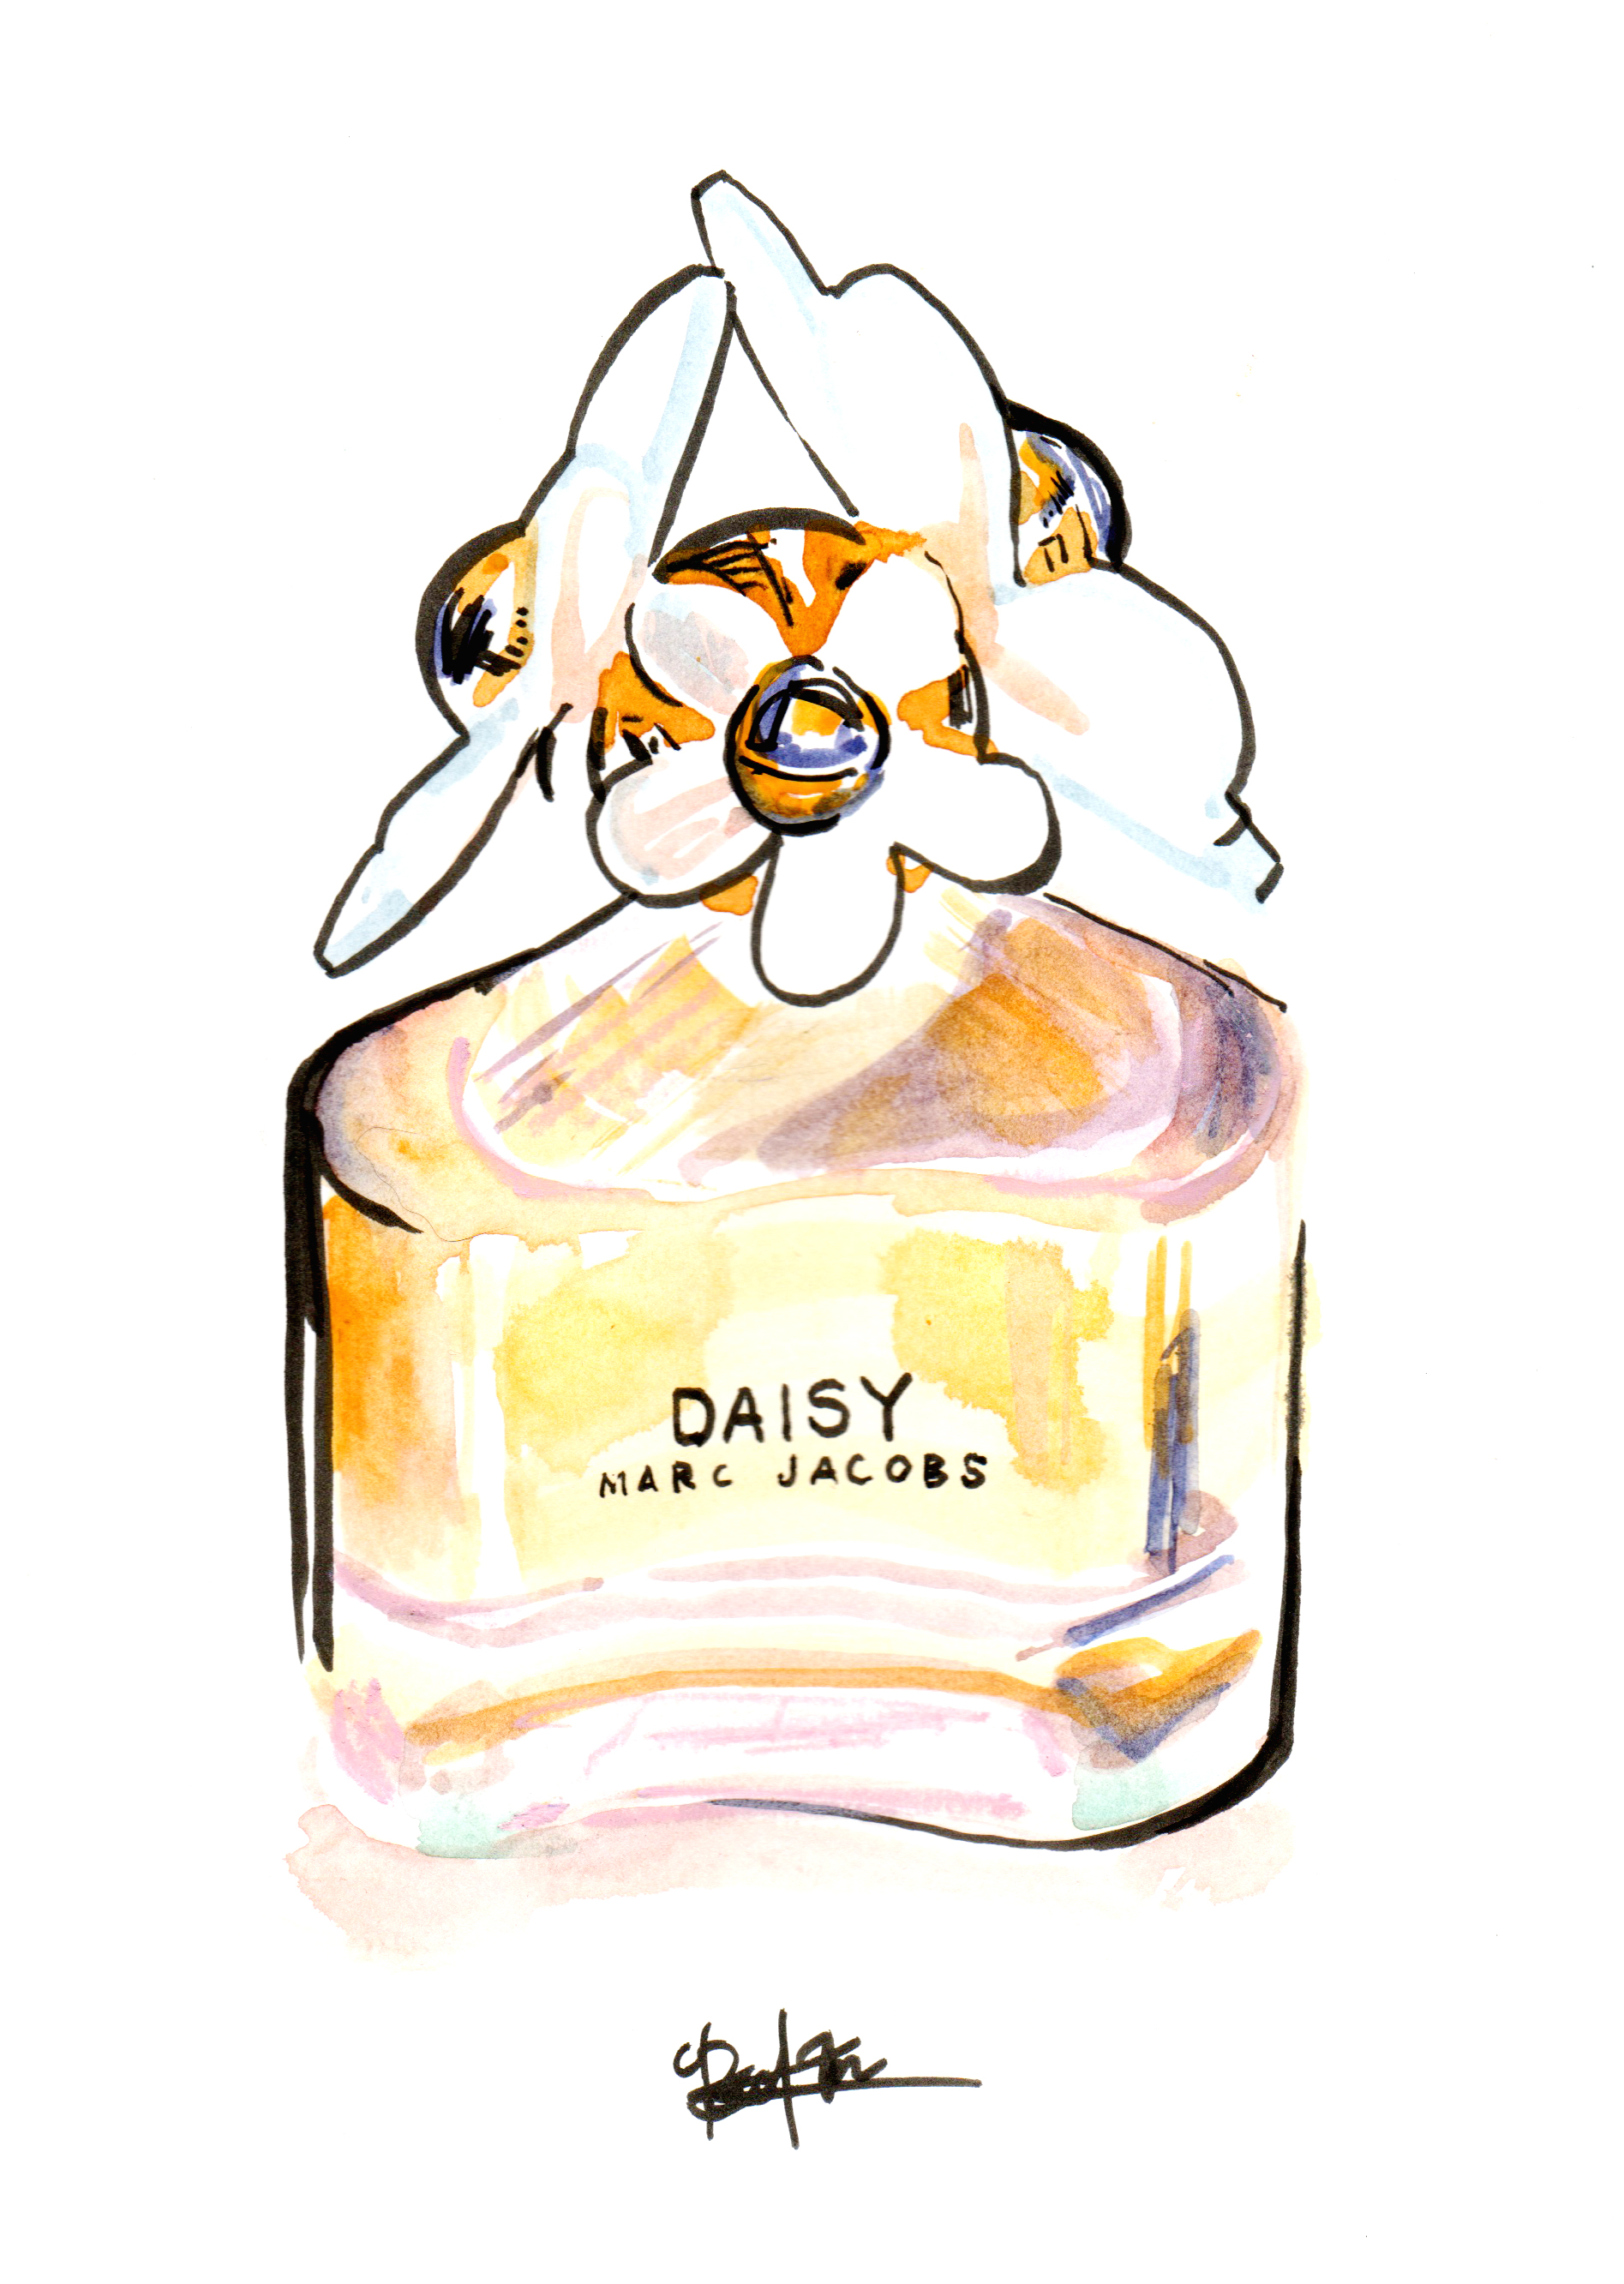 Daisy by Marc Jacobs in mixed media.